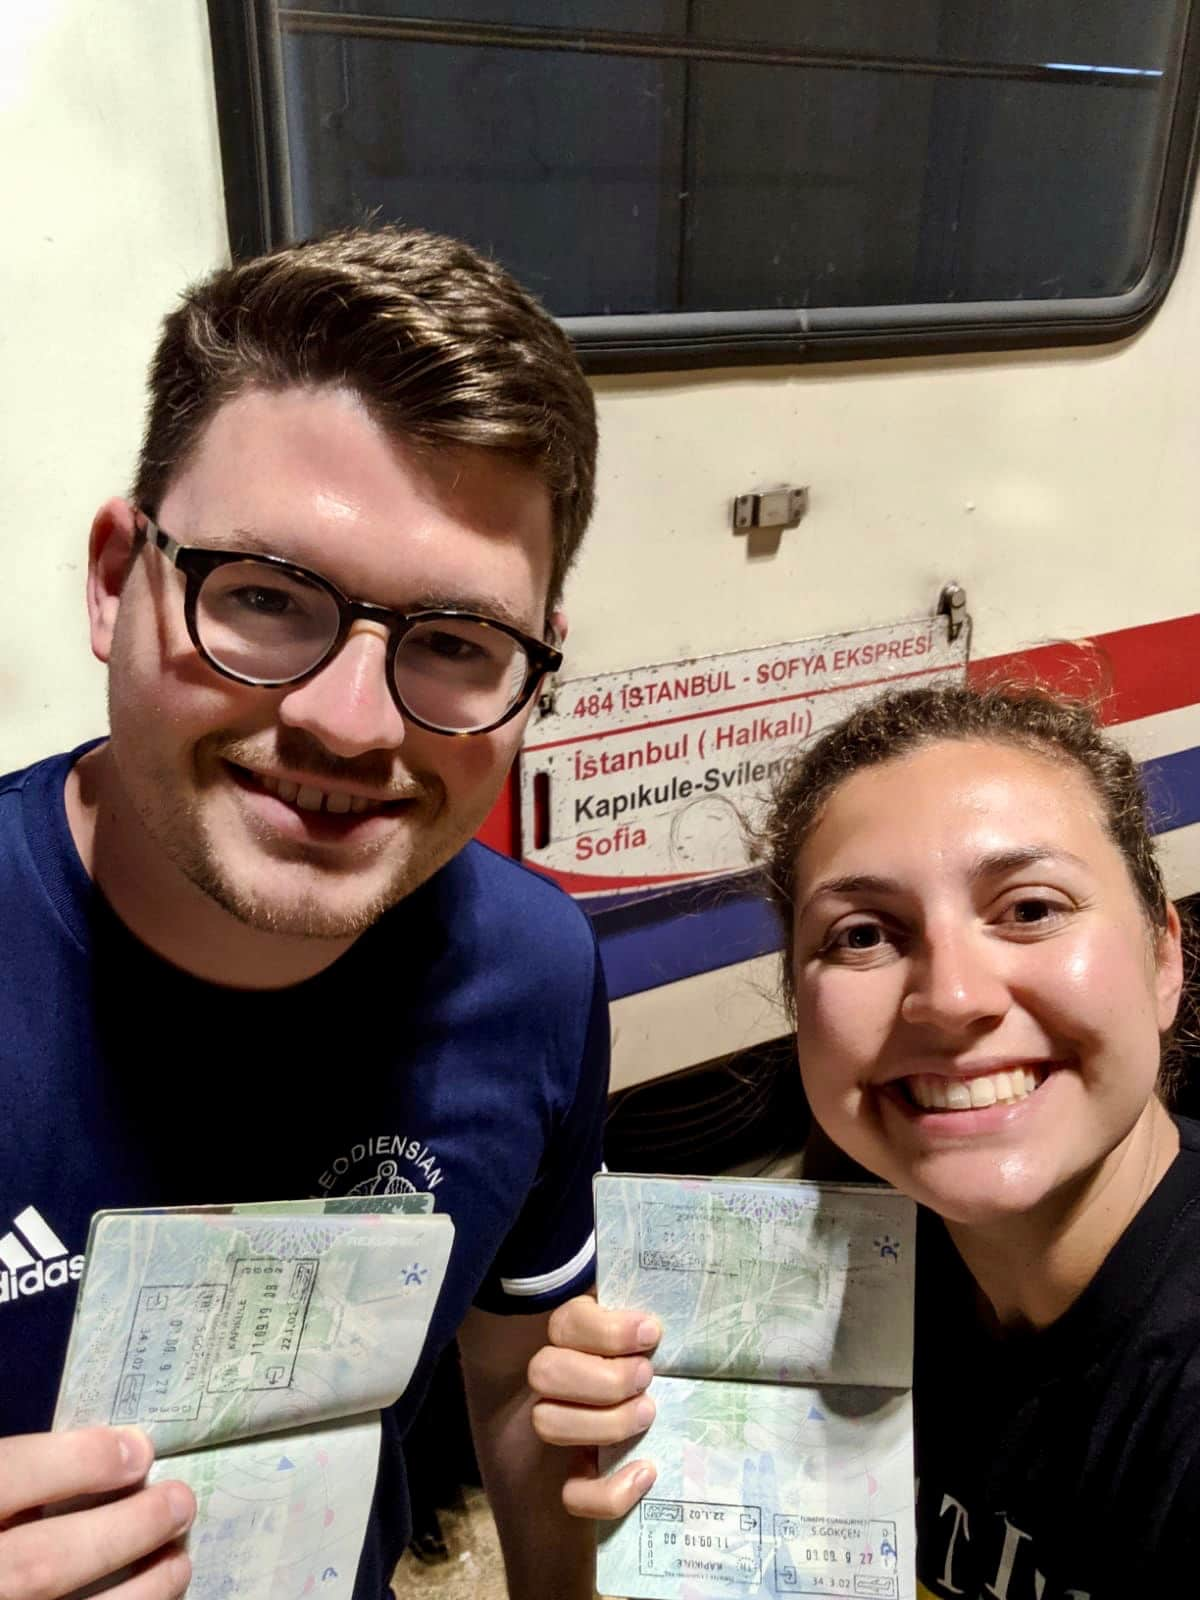 Selfie of man and woman at the Turkey Bulgaria border crossing, holding up their passports on the stamp page and smiling at the camera. The Istanbul to Sofia night train is in the background